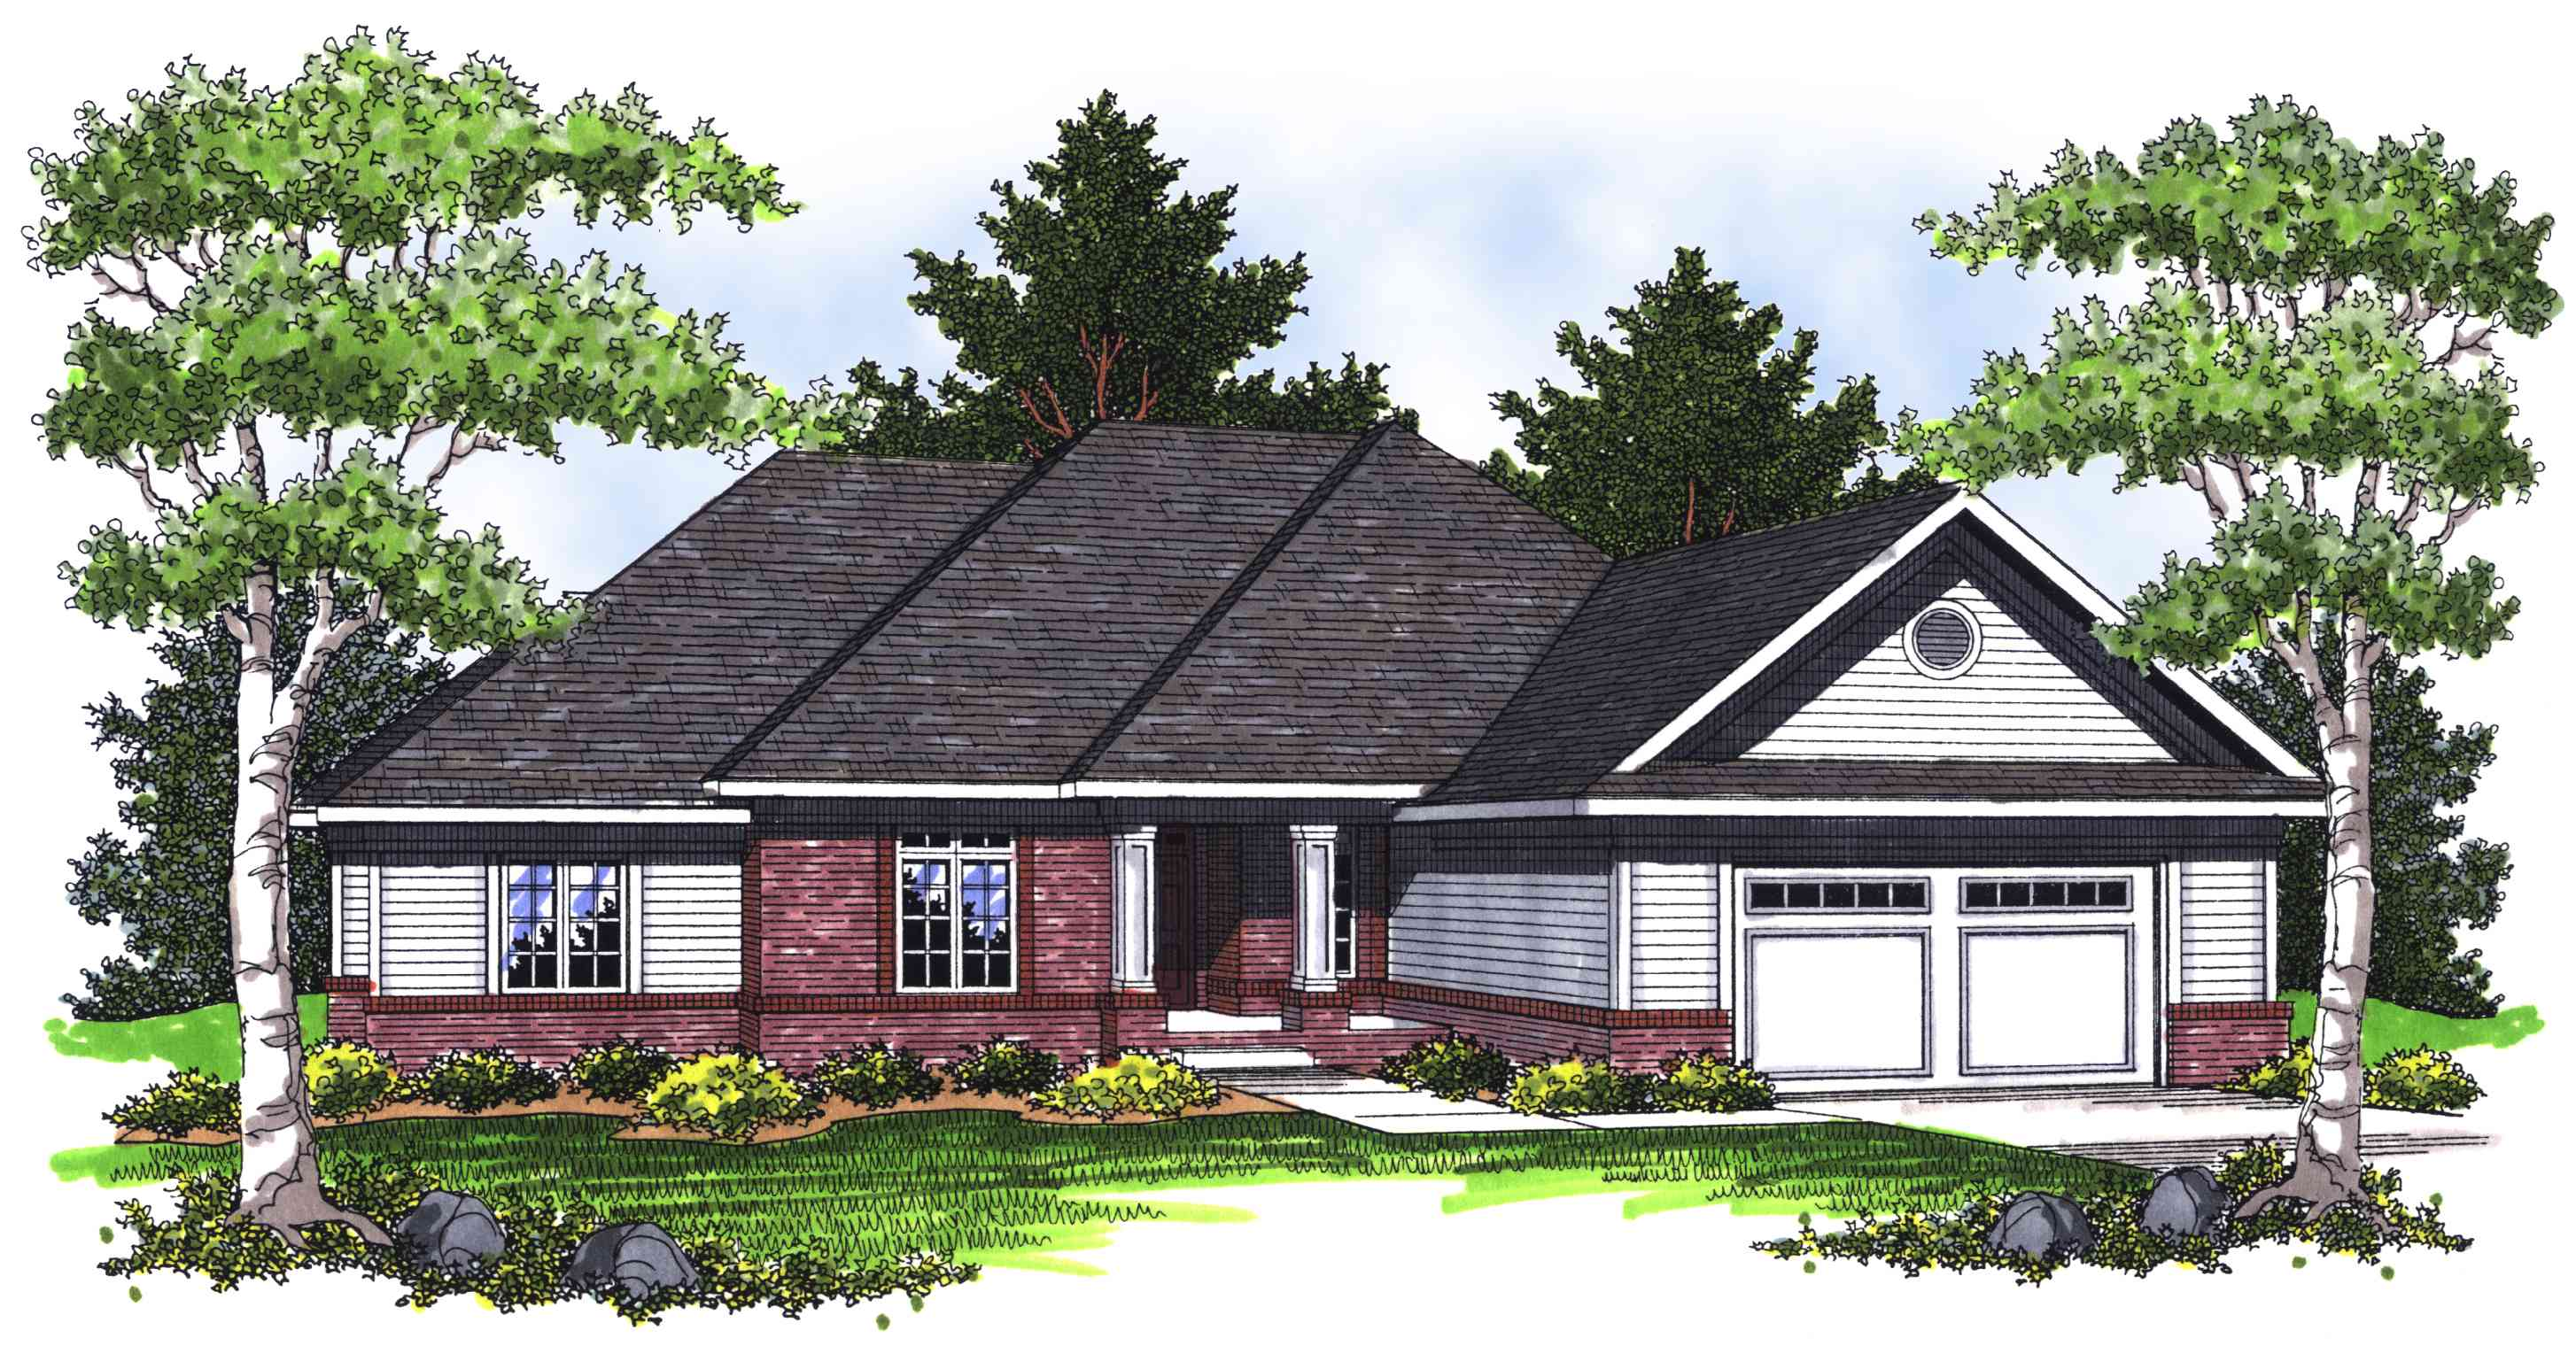 Ranch home with hip roof 89231ah 1st floor master for Ranch house roof styles